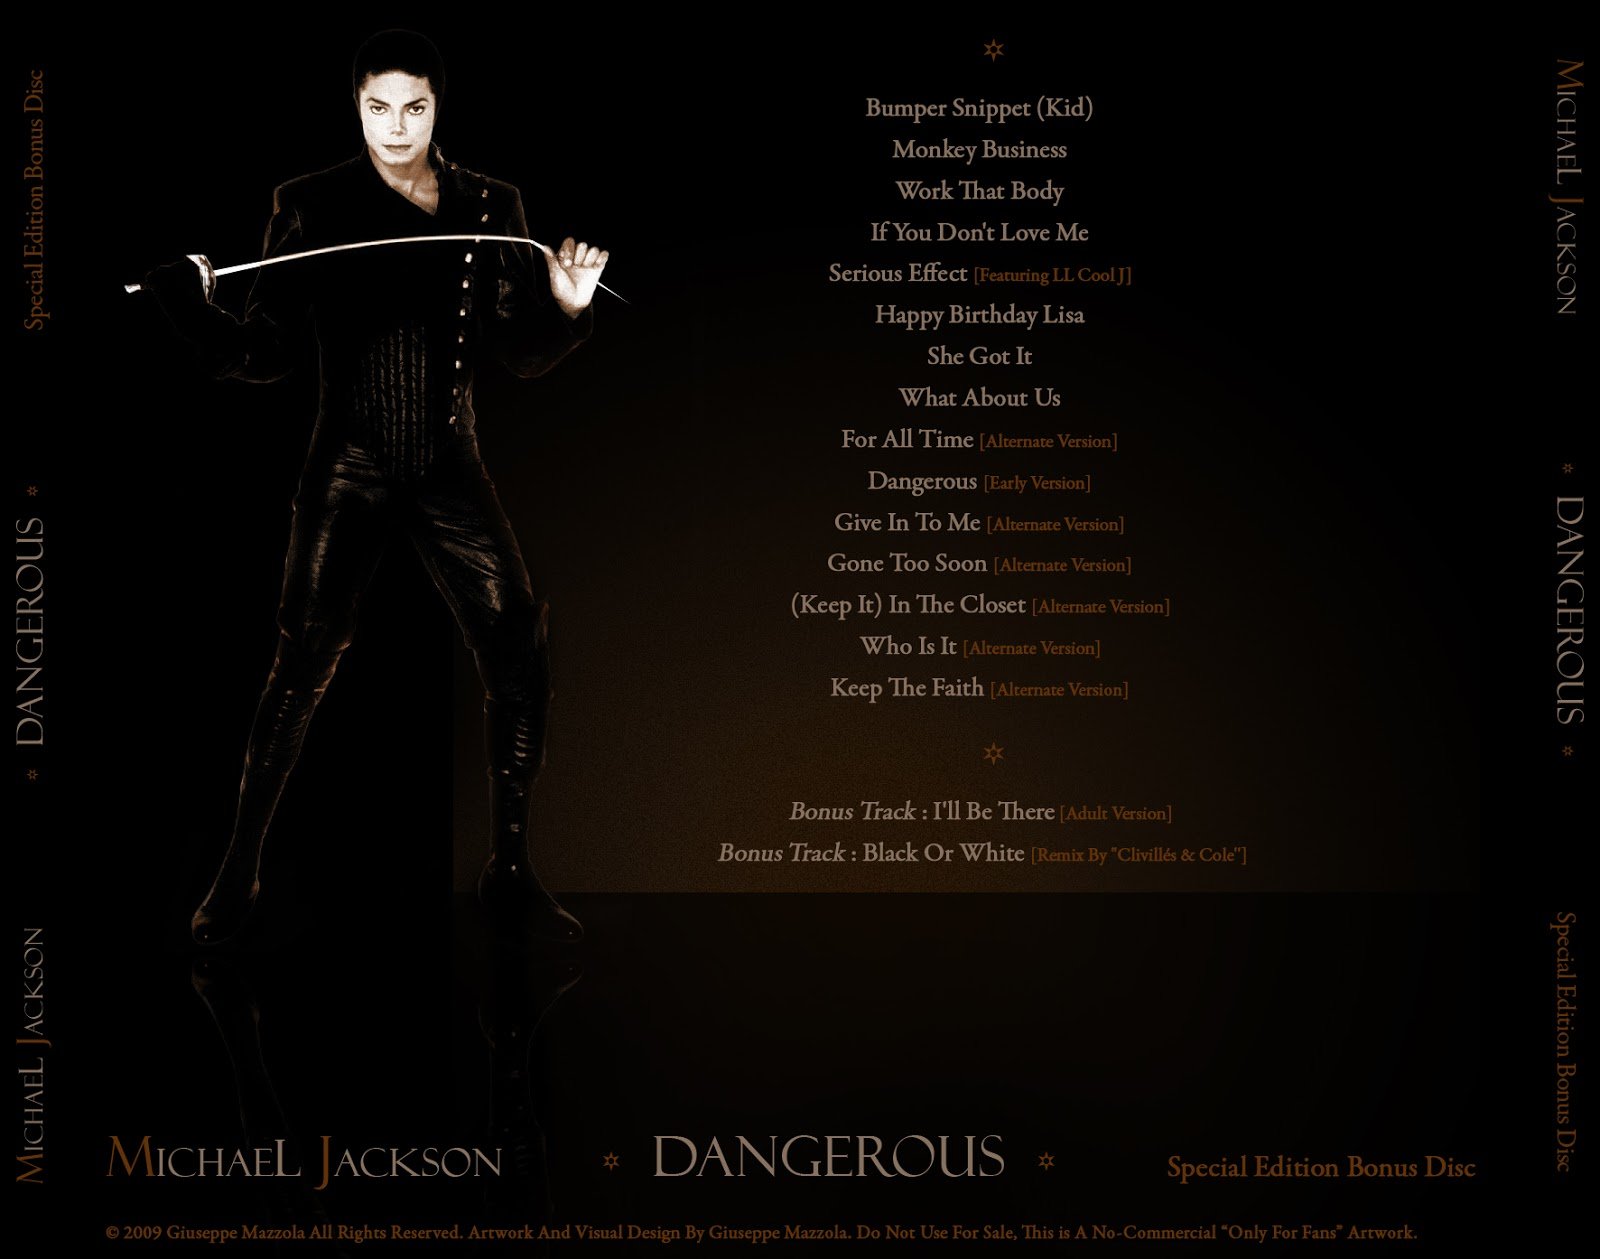 Download Michael Jackson Unreleased Mp3 Songs Vibelimi